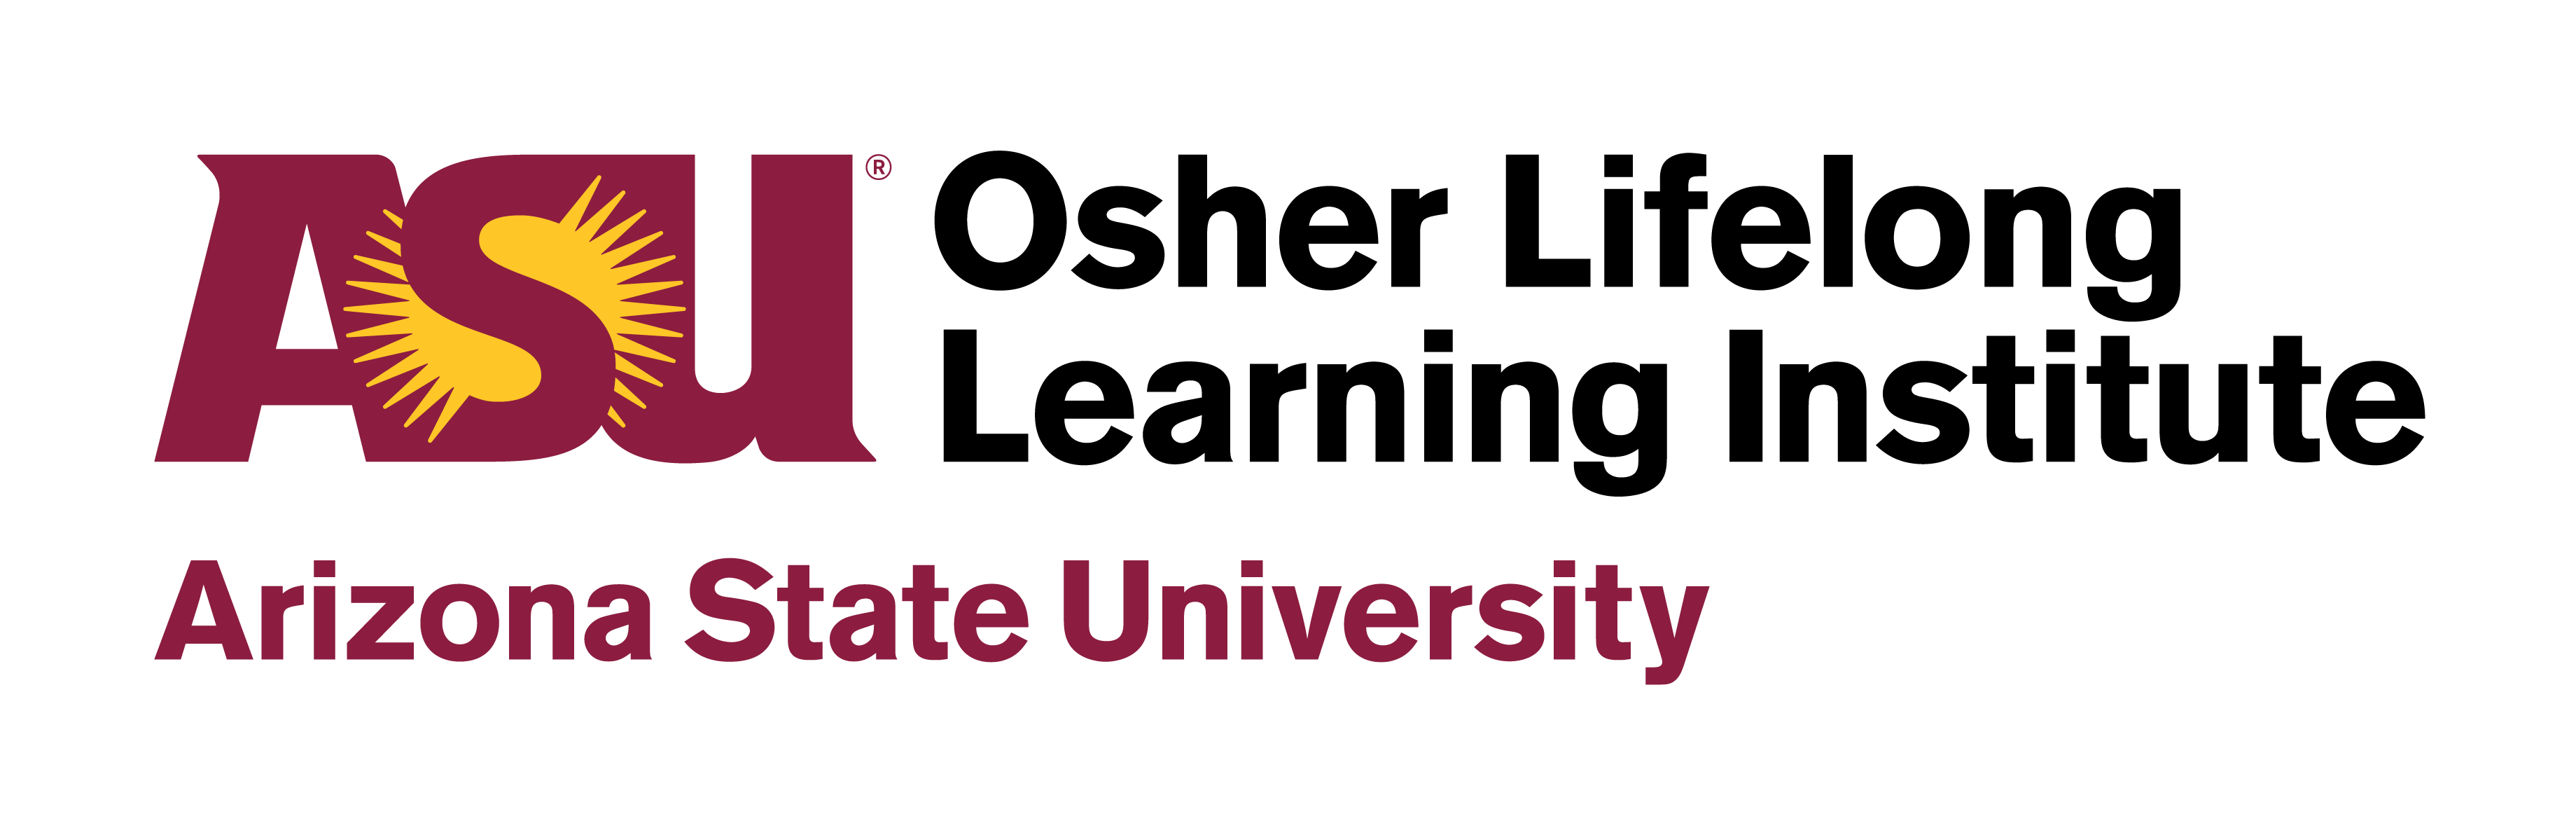 Osher Lifelong Learning Institute at Arizona State University